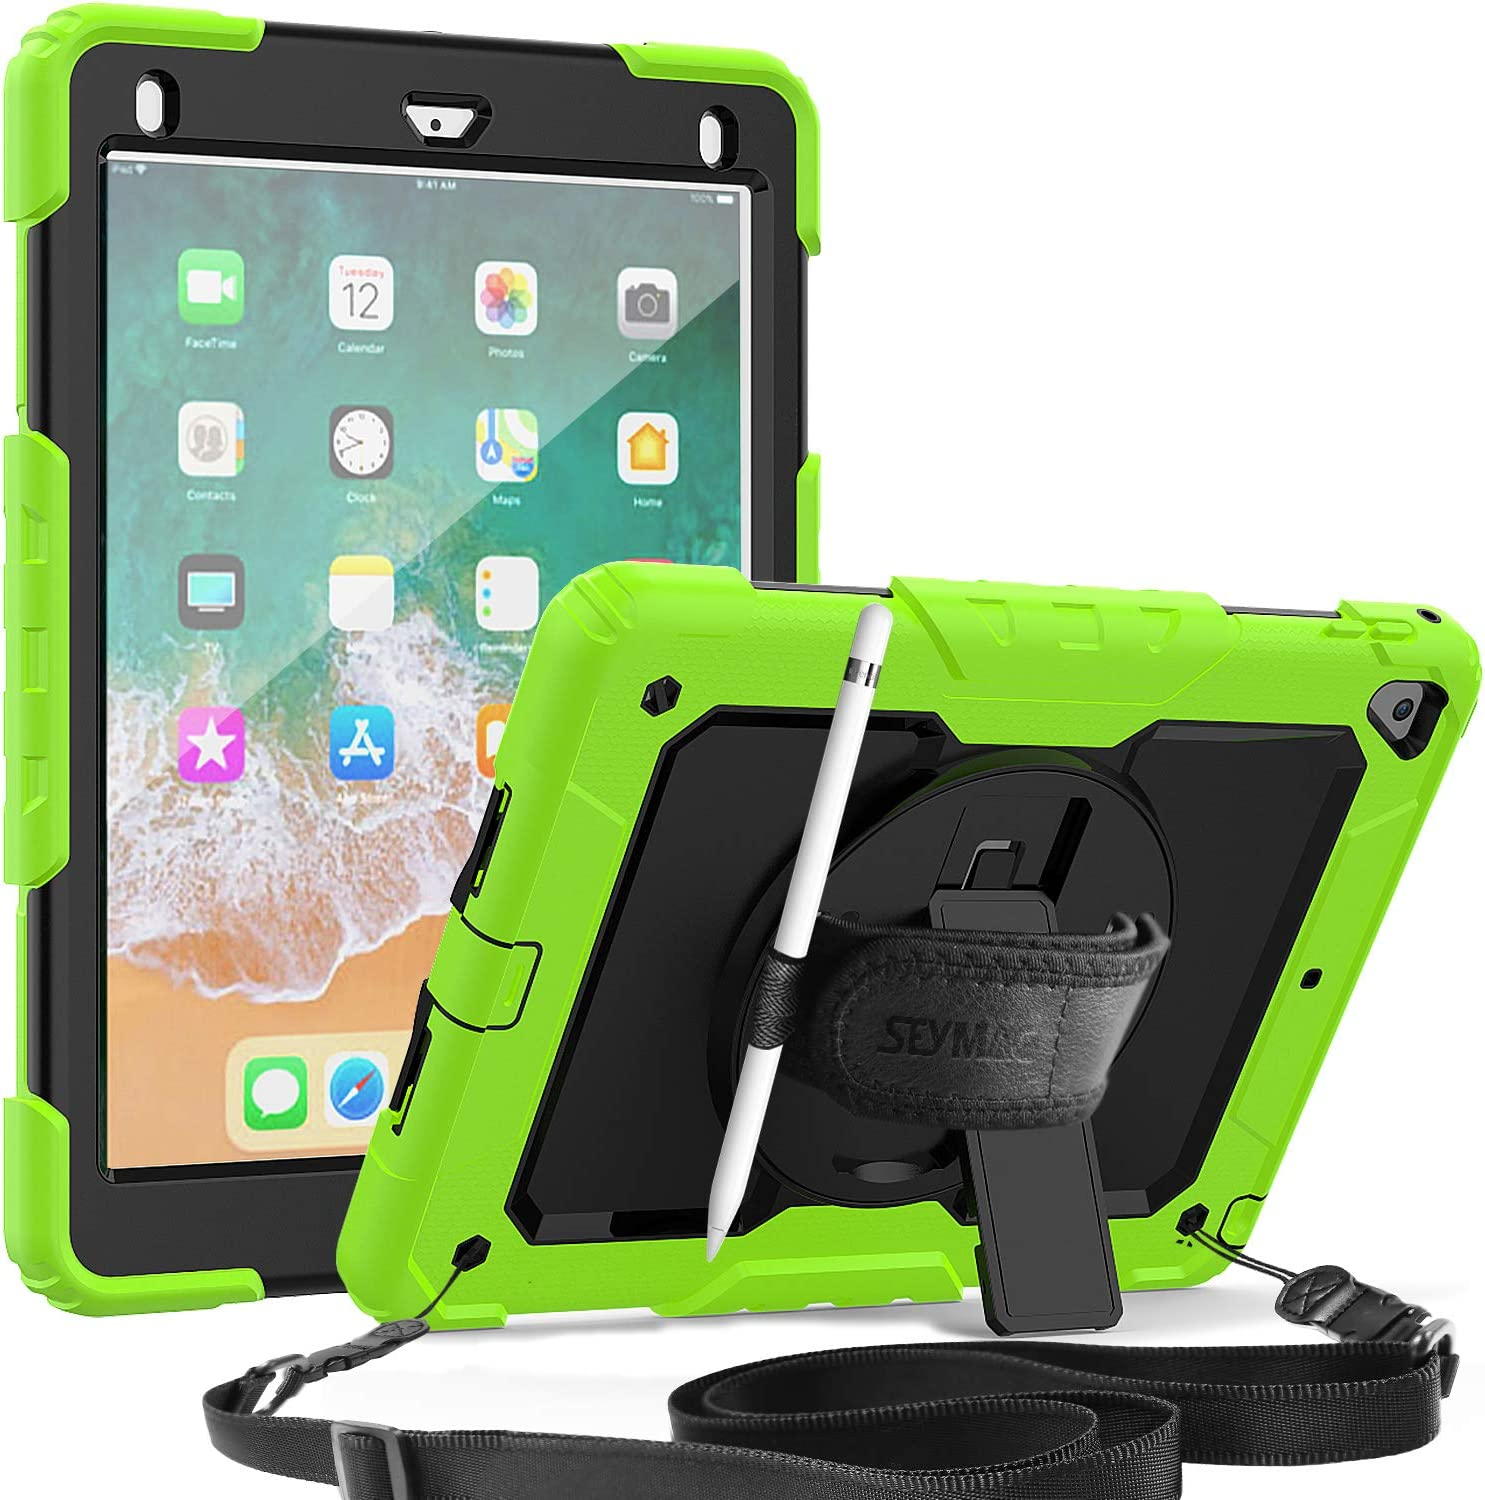 SEYMAC iPad 5th/6th Gen Case, 3 Layer Shockproof Case with Built-in Screen Protector Pencil Holder, 360 Degree Rotatable Stand & Hand Strap, Shoulder Strap for iPad 9.7 inch/Pro 9.7/Air 2-Green/Black